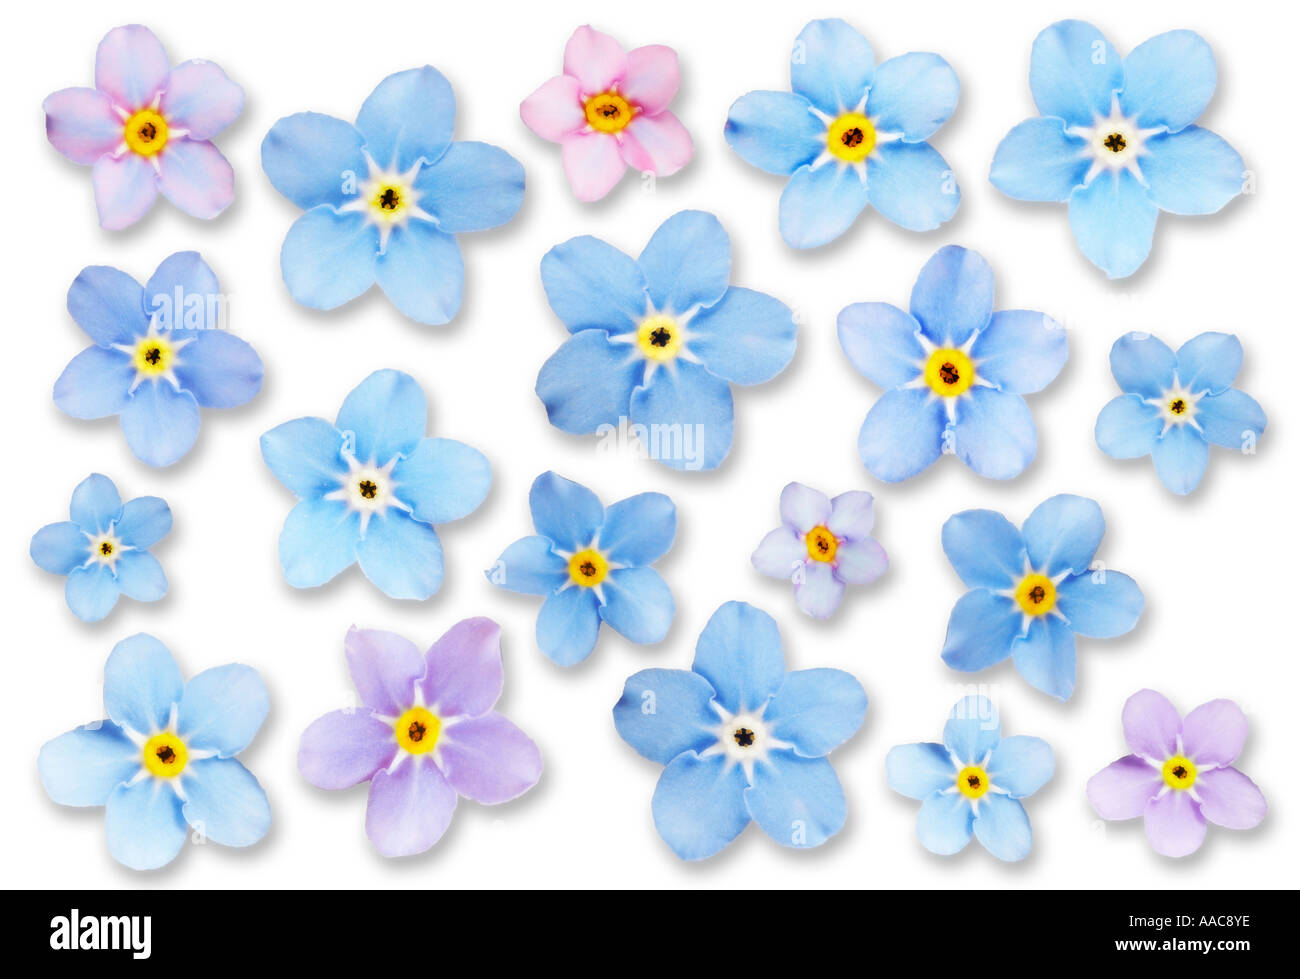 Abstracted Forget Me Not Flowers on White Background - Stock Image